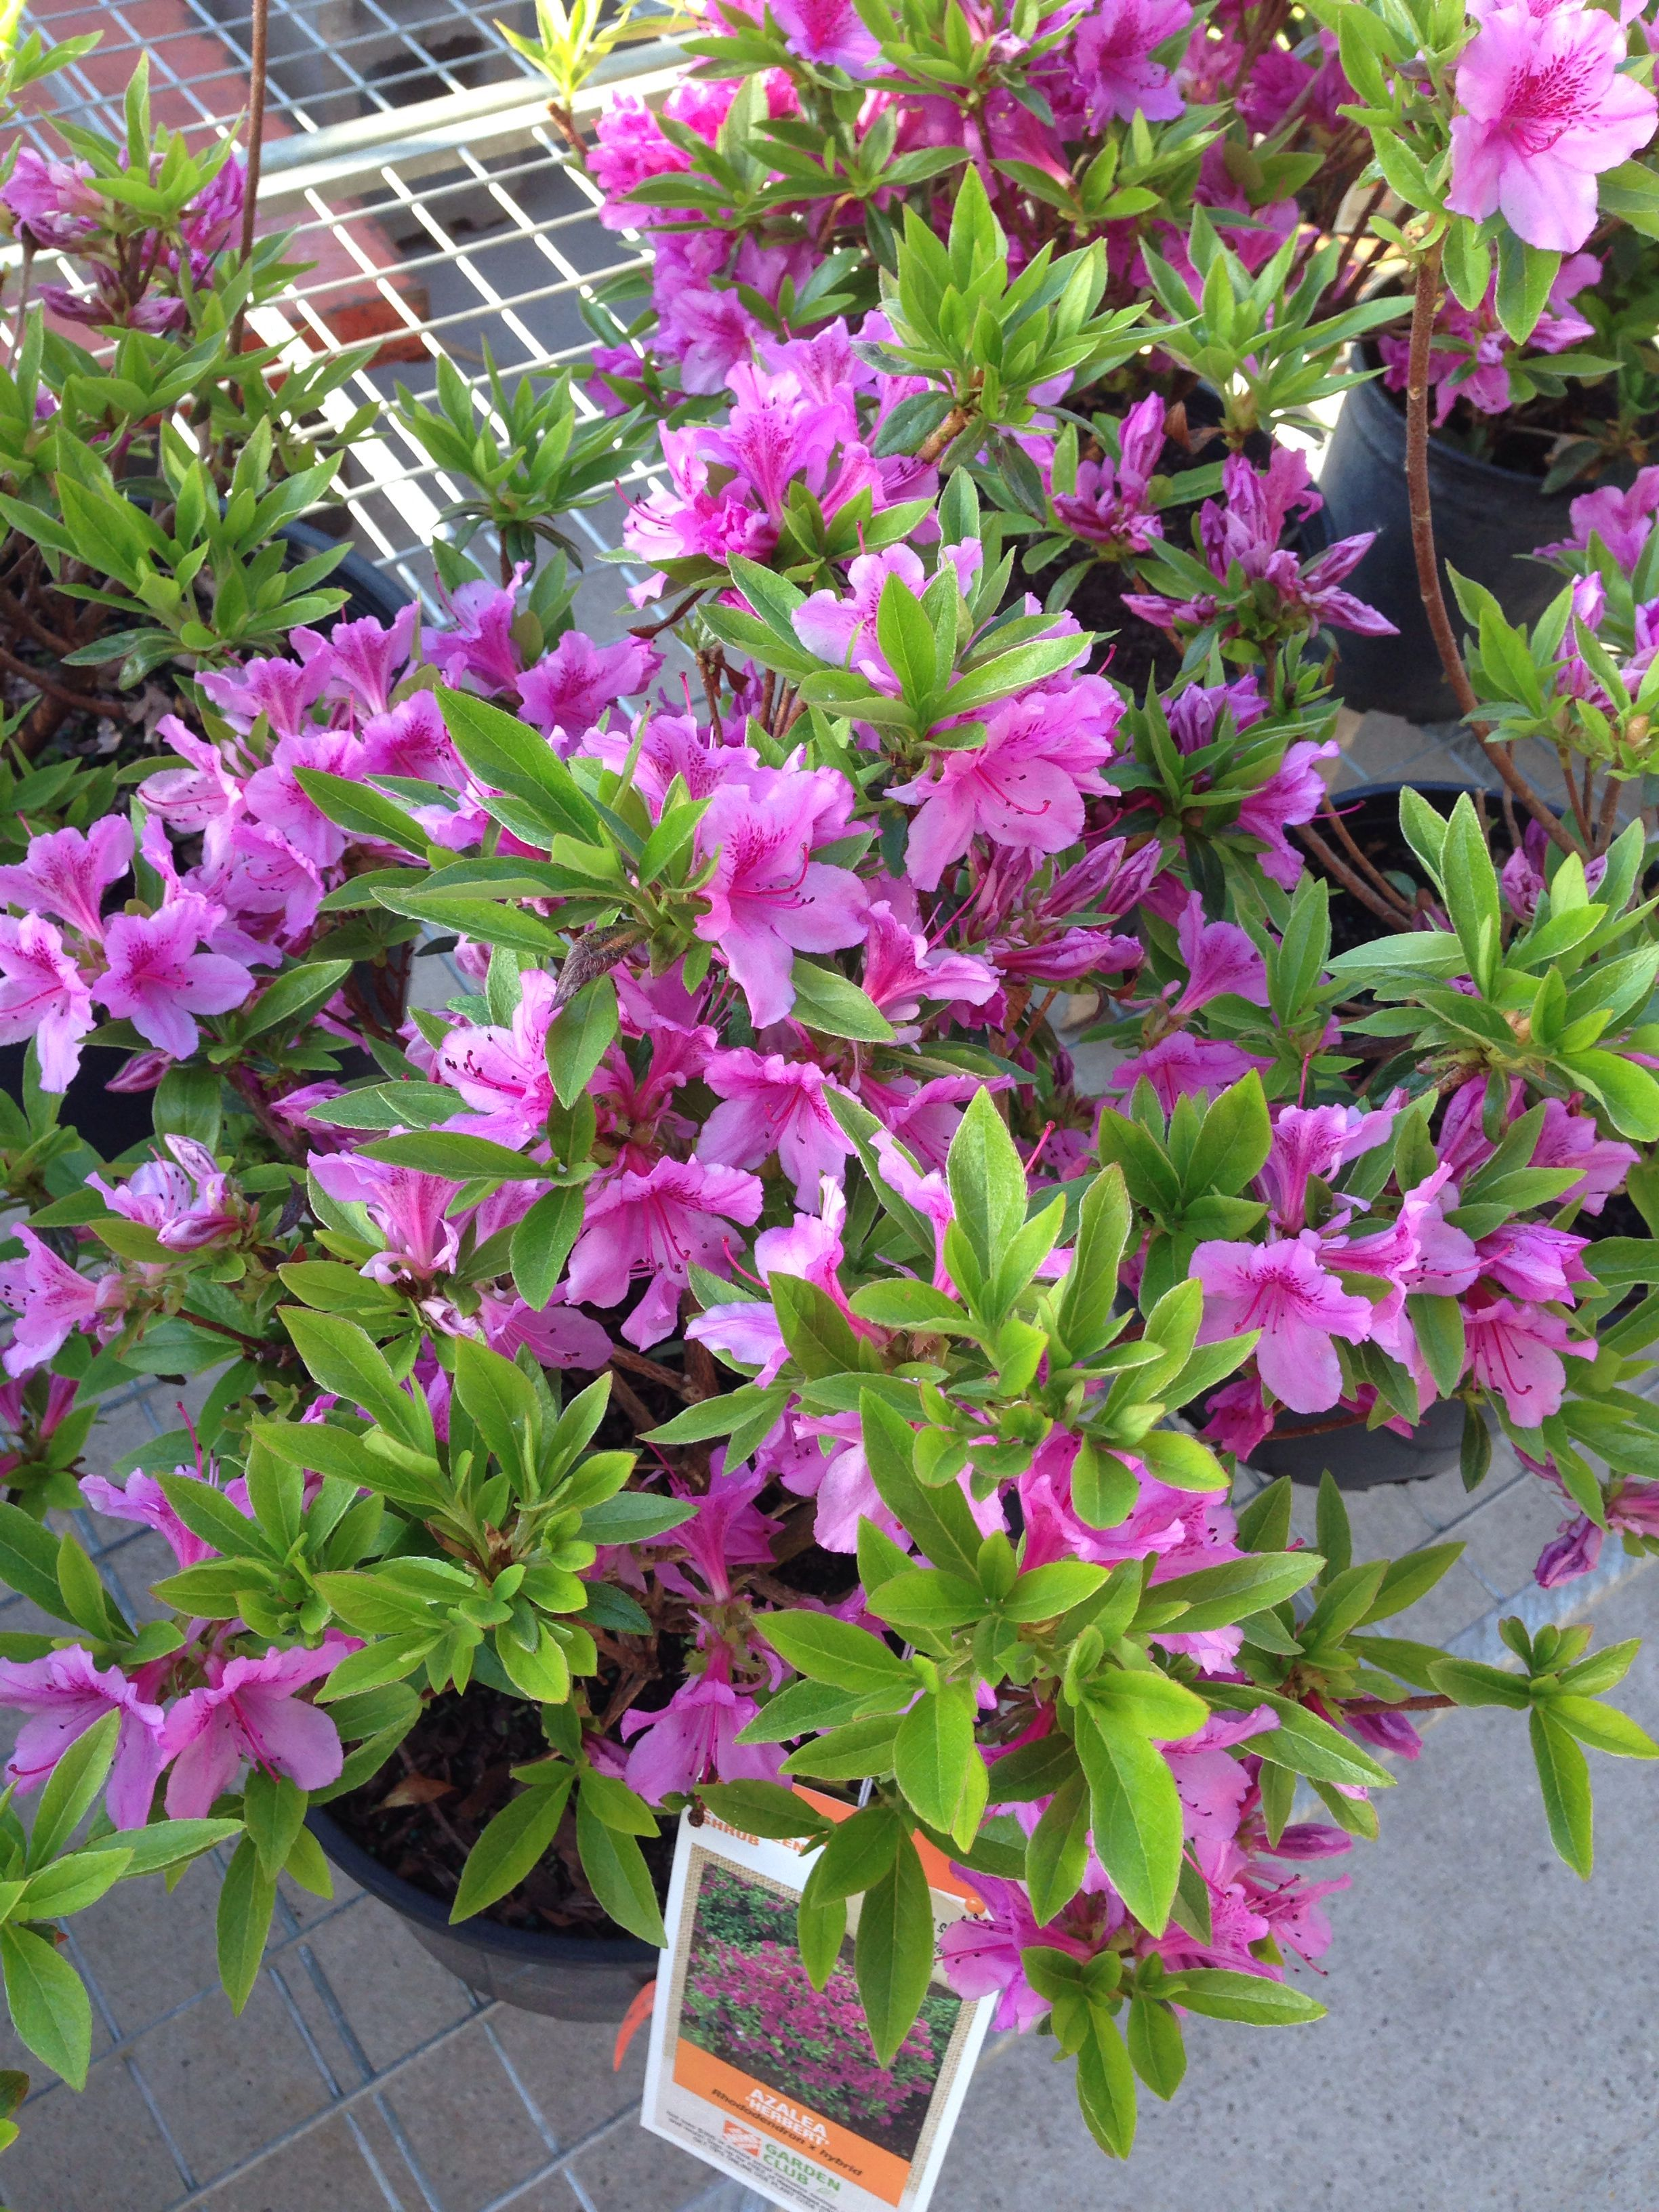 Azalea 'Herbert' Bloom where youre planted, Chives plant